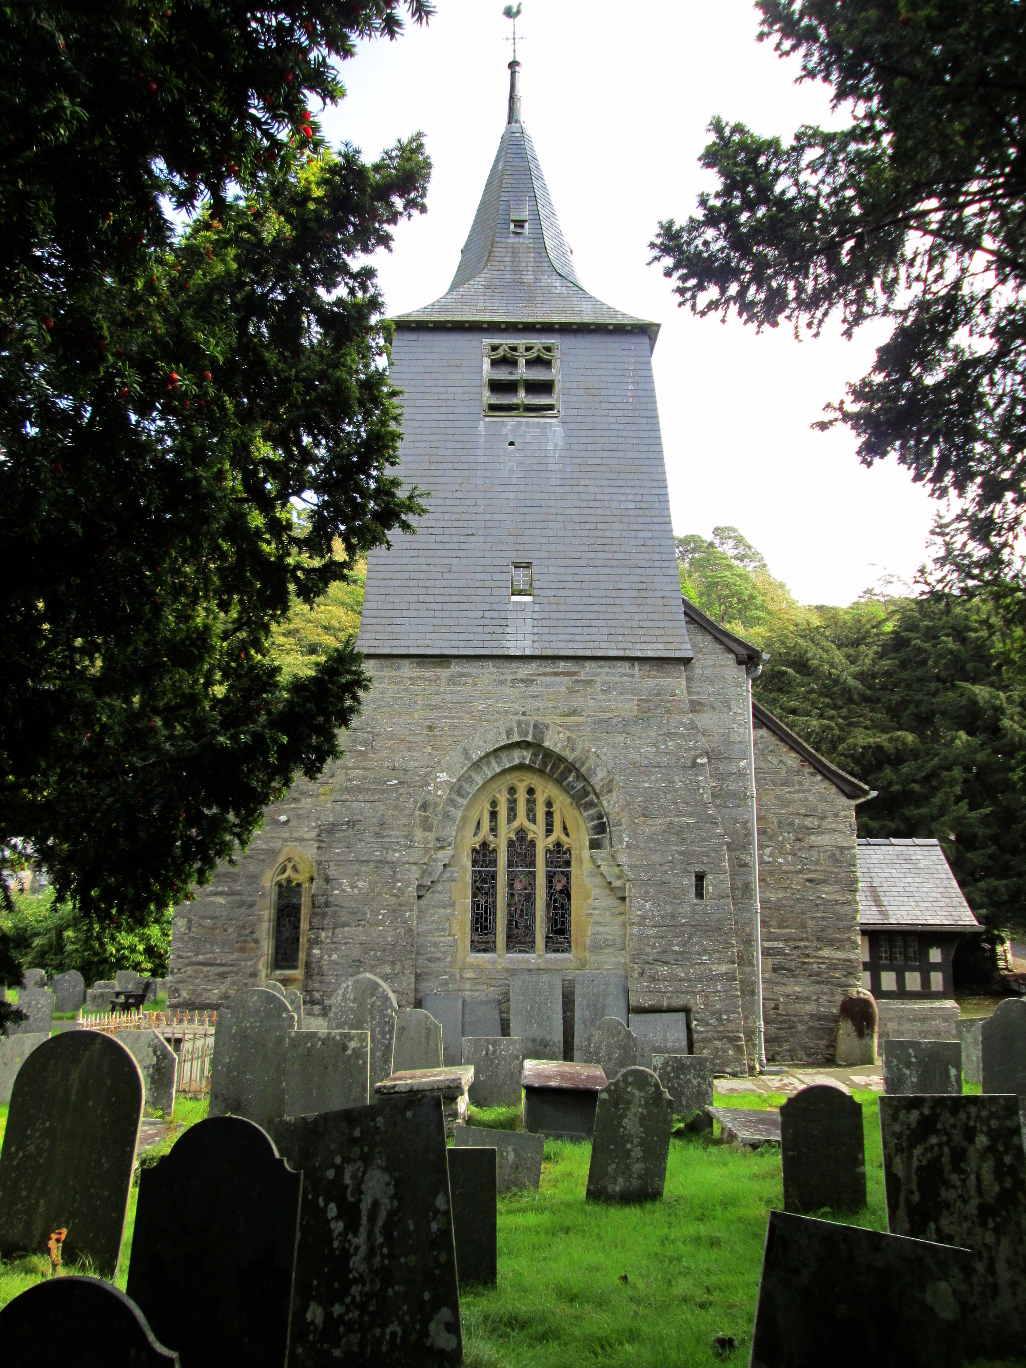 The distinctive steeple of St Twrog's church, viewed from amongst the ancient yews. The stone can be seen at bottom right. © Remy Dean